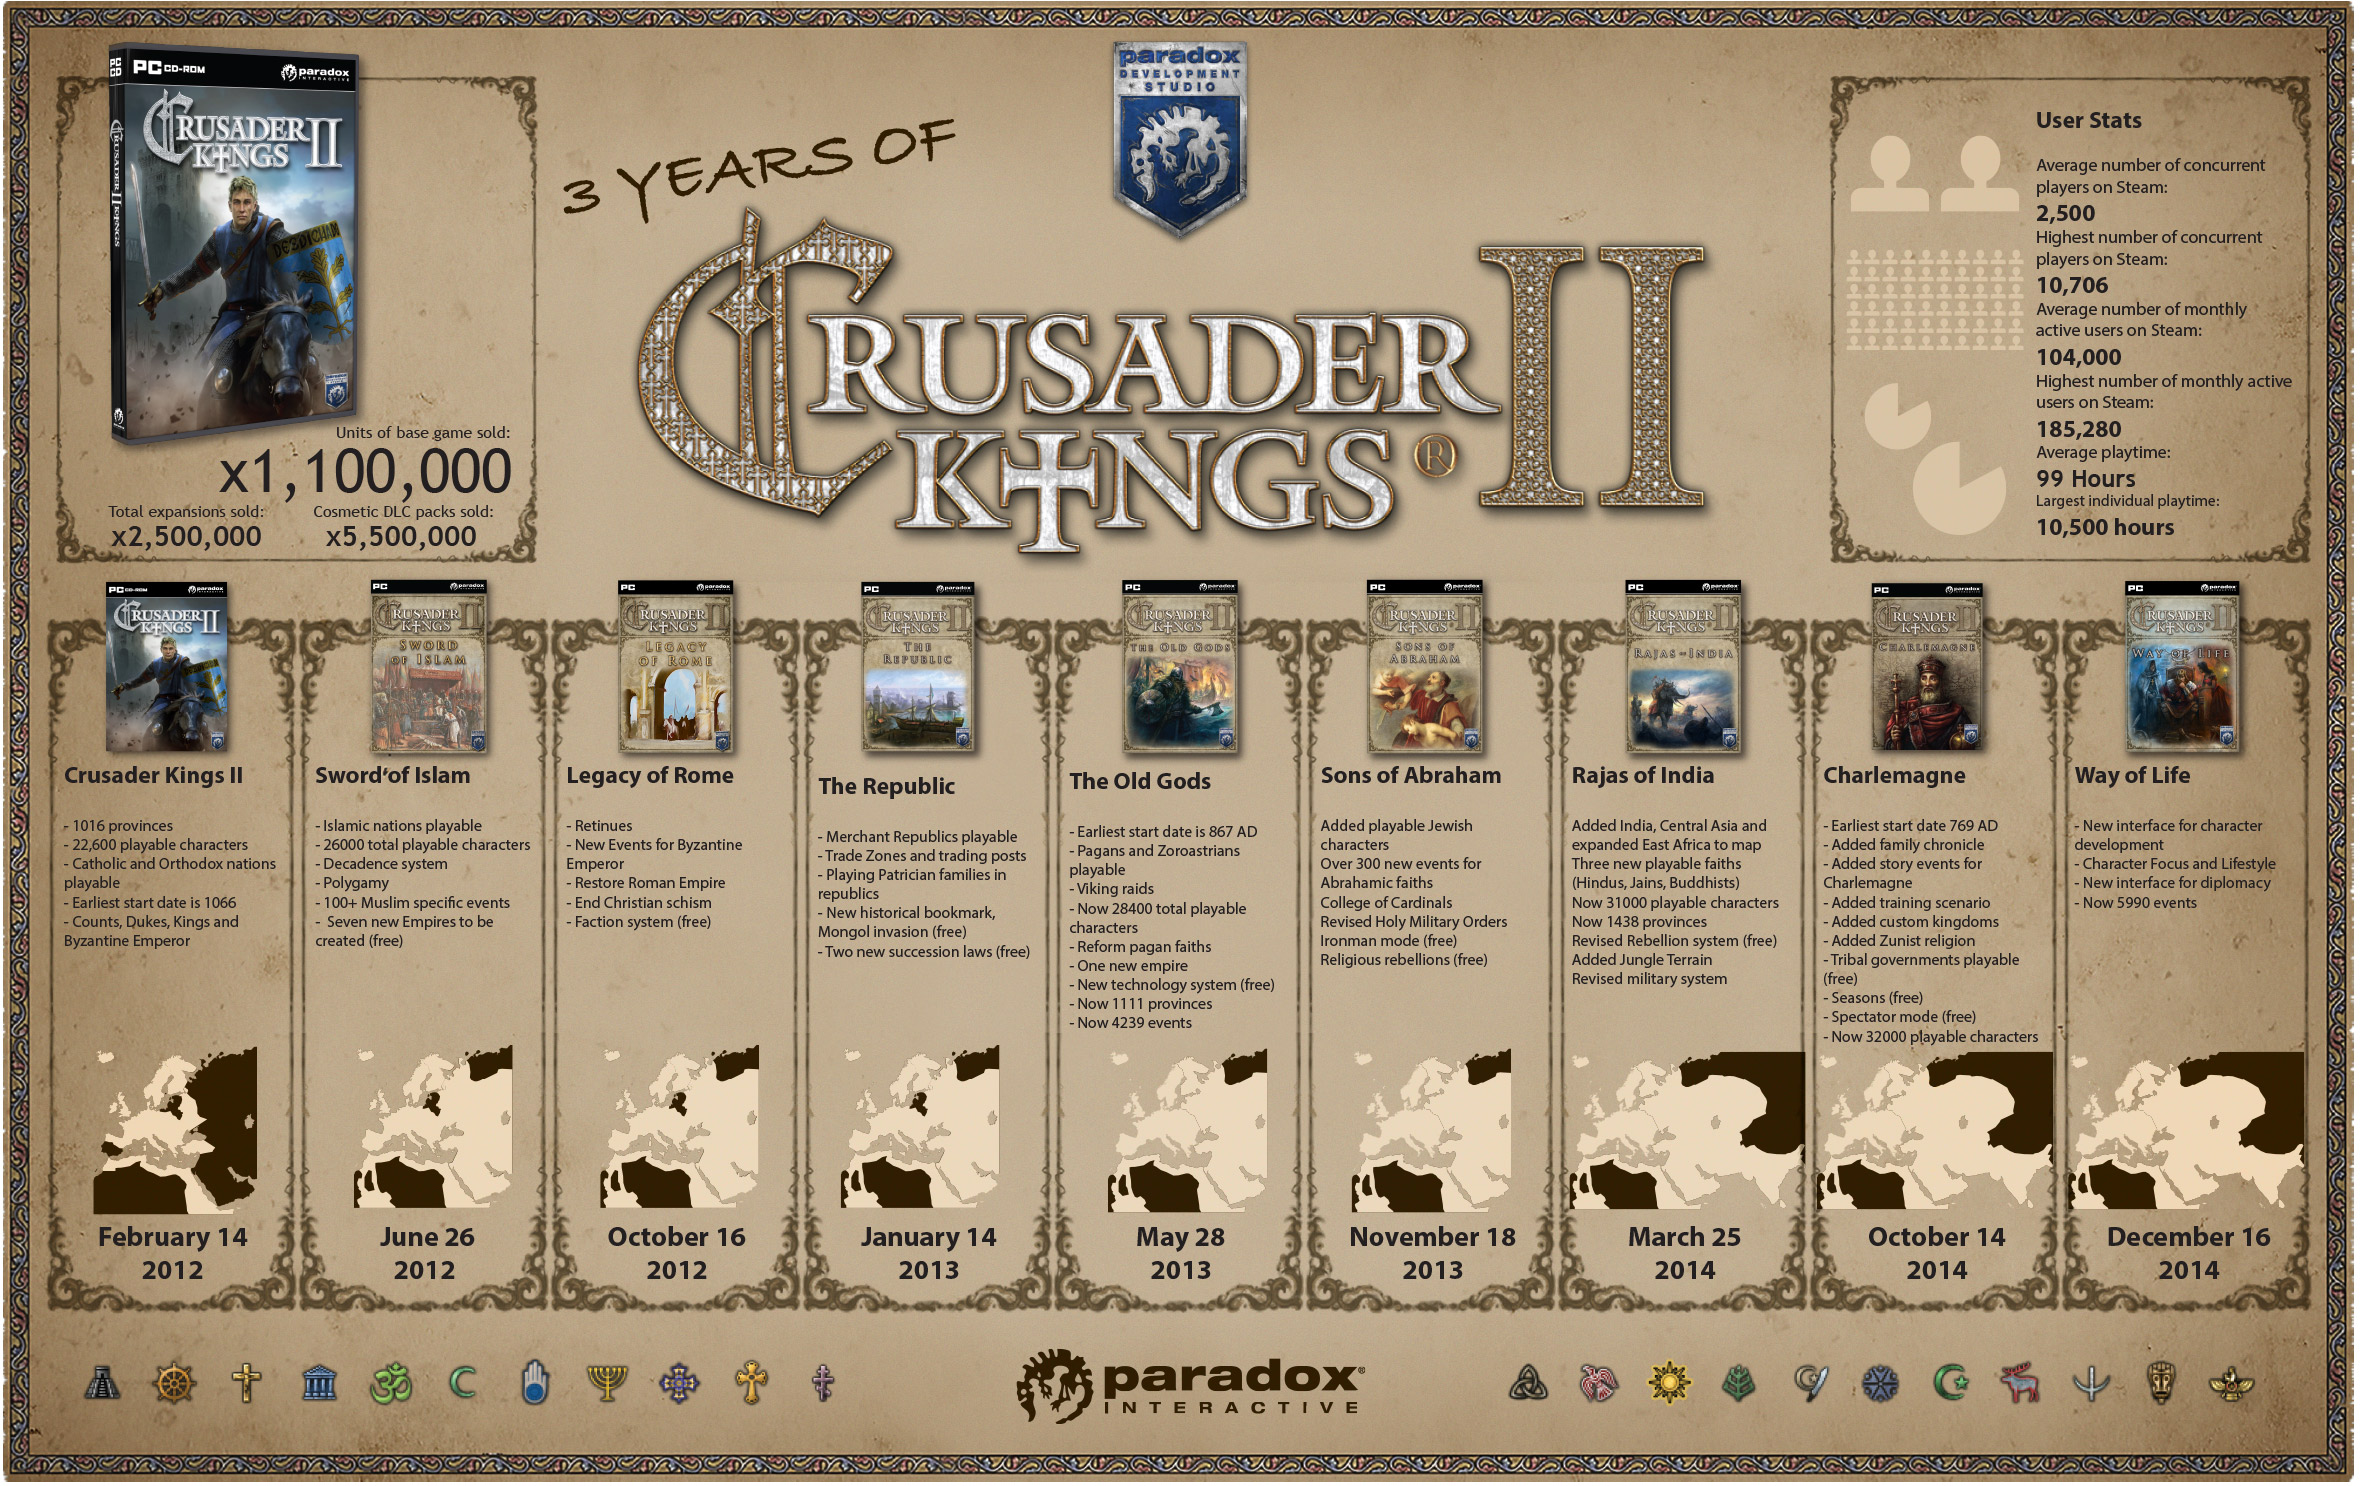 Crusader Kings 2 has 100,000 monthly users